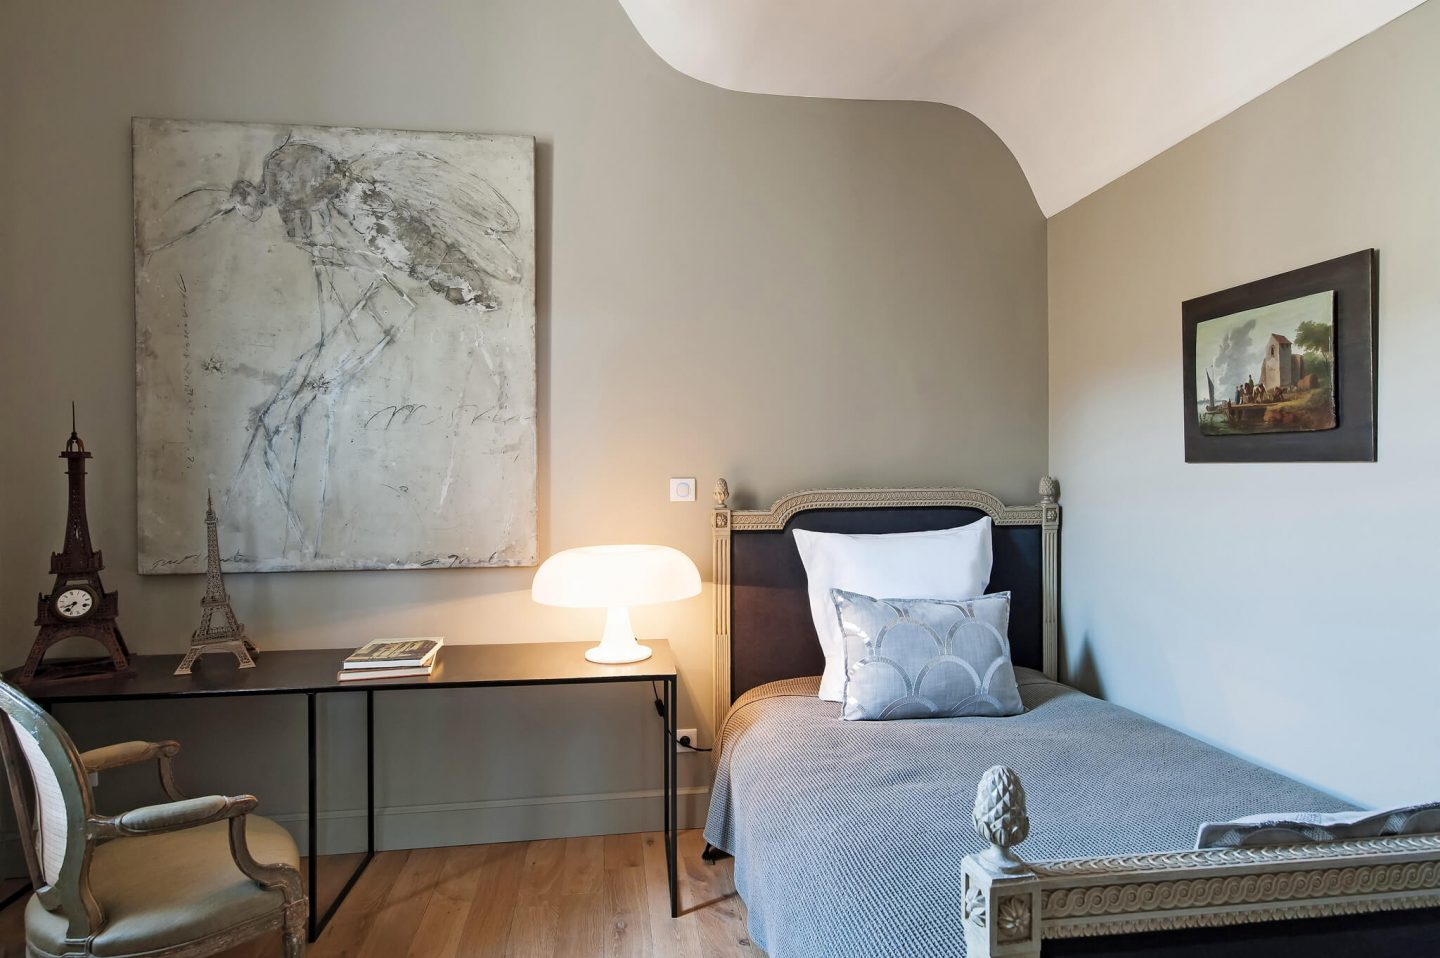 Modern art and a traditional style French country bed join a modern desk in a bedroom suite. Serene French Country Style interior design inspiration. The Serenity Suite at Avignon Hôtel Particulier. Luxurious and timeless restored 19th century French chateau in the South of France. Provencal romance, traditional architecture, modern French design, unique art, and European antiques. Photo: Haven In.